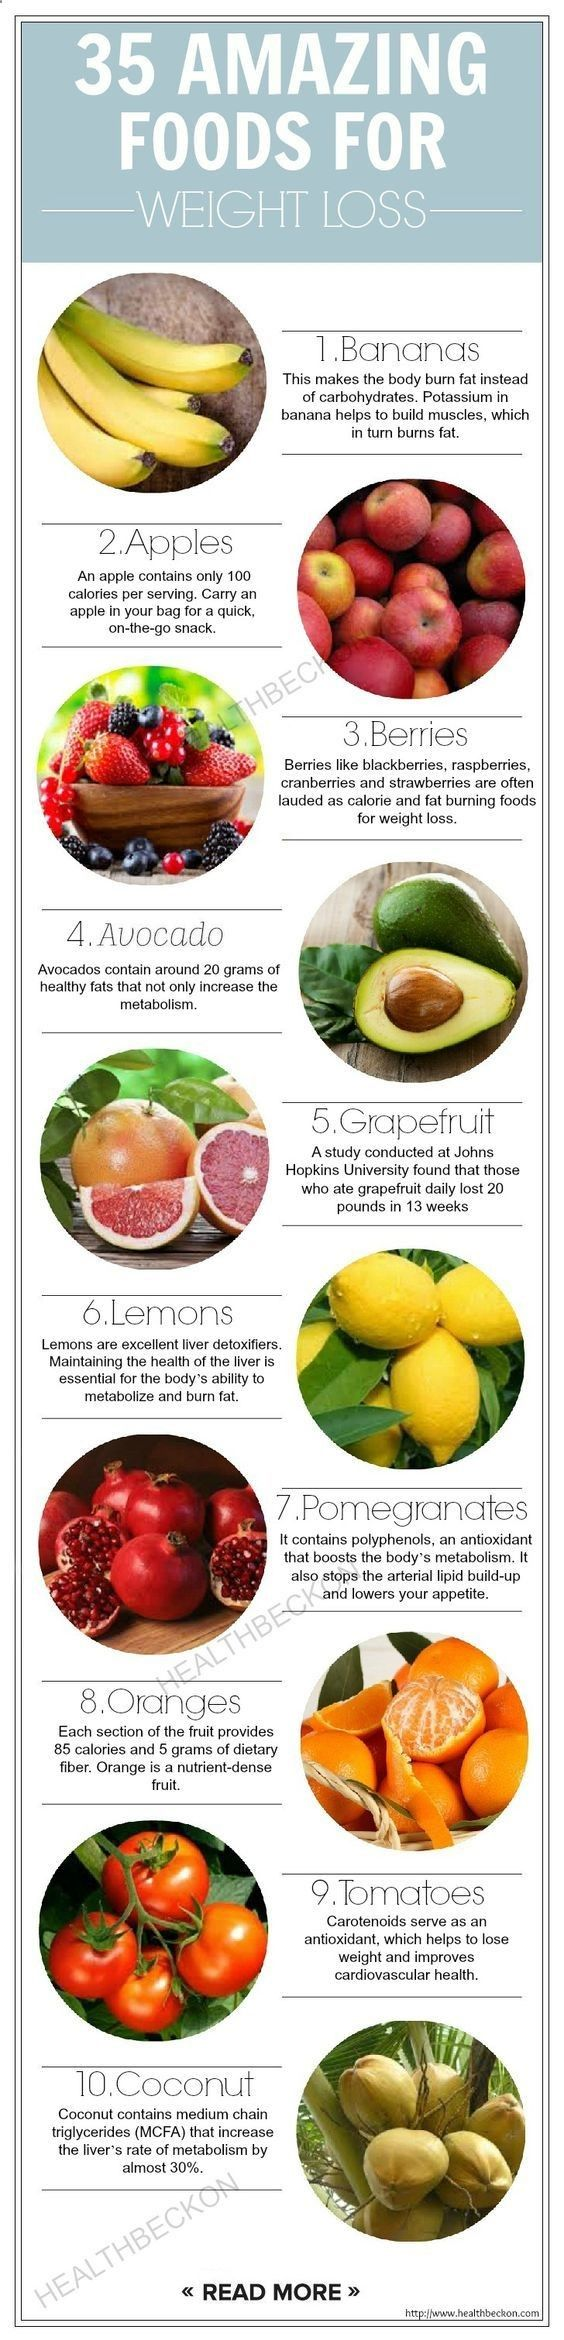 Fat Burning 21 Minutes a Day These 8 Fat Burning Foods are GREAT! Im so happy I found these! Ive tried a few and Ive ALREADY lost a weight! That detox drinks has REALLY worked its magic! SO pinning for later! Using this 21-Minute Method, You CAN Eat Carbs, Enjoy Your Favorite Foods, and STILL Burn Away A Bit Of Belly Fat Each and Every Day